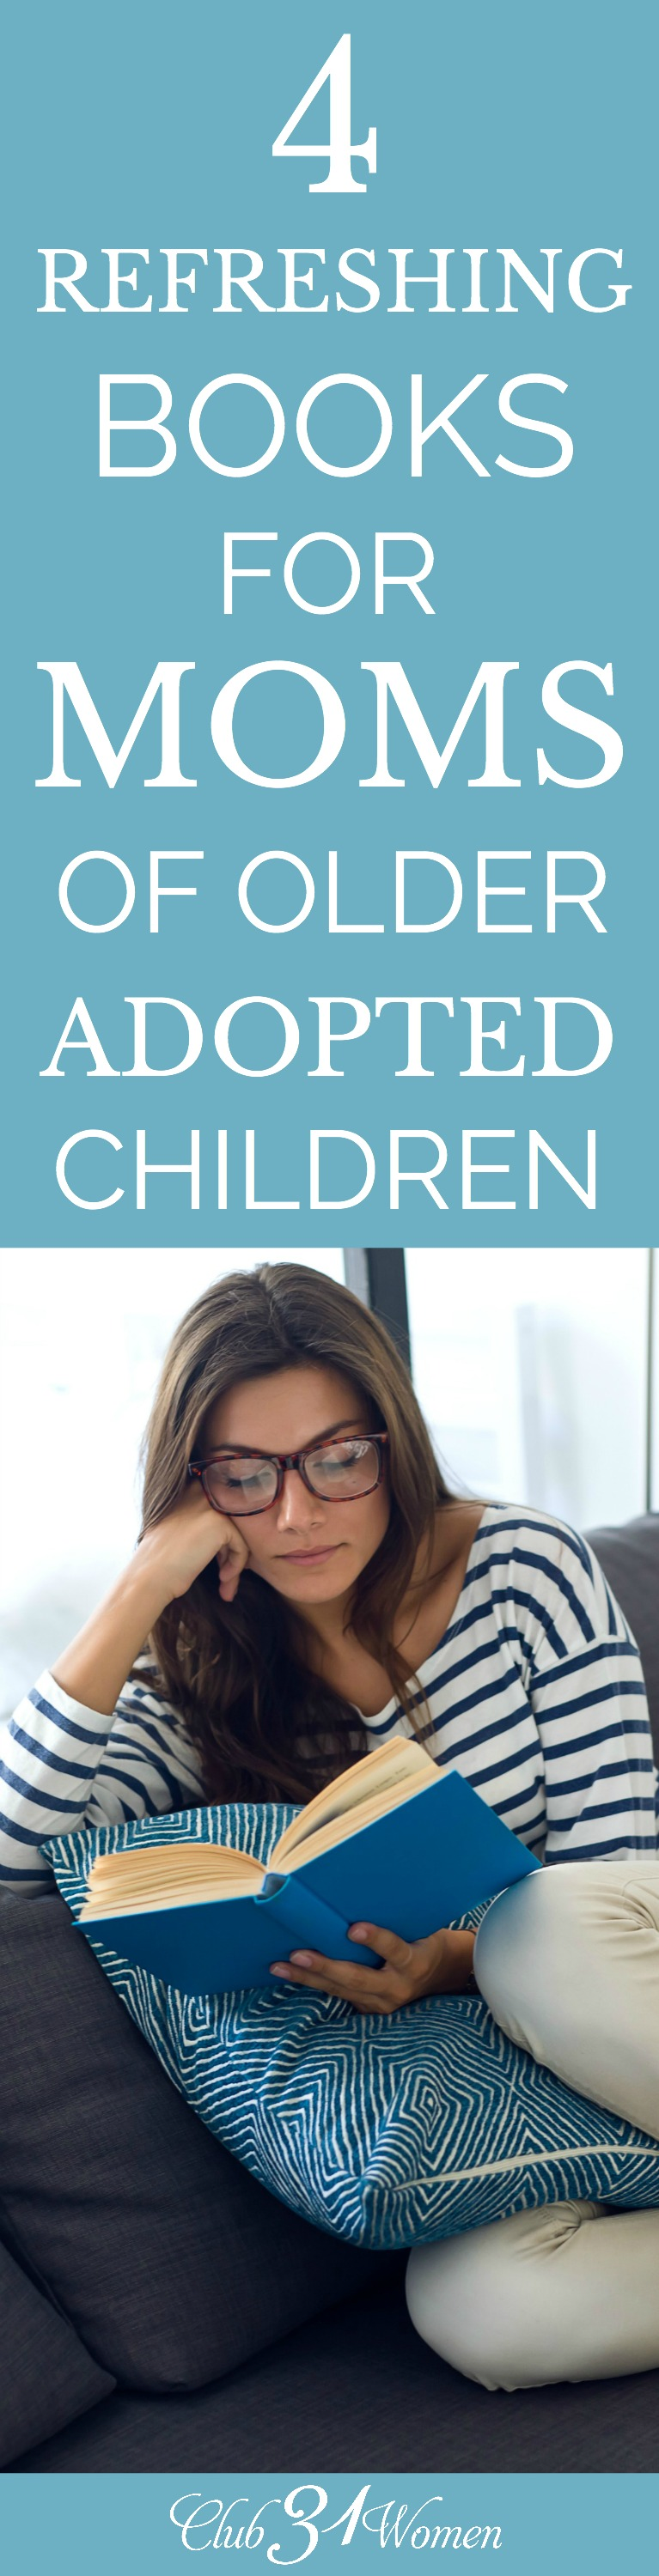 If you're the parent of older, adopted children, this list of amazing books, hand-picked just for you, may be the refreshing you need! via @Club31Women